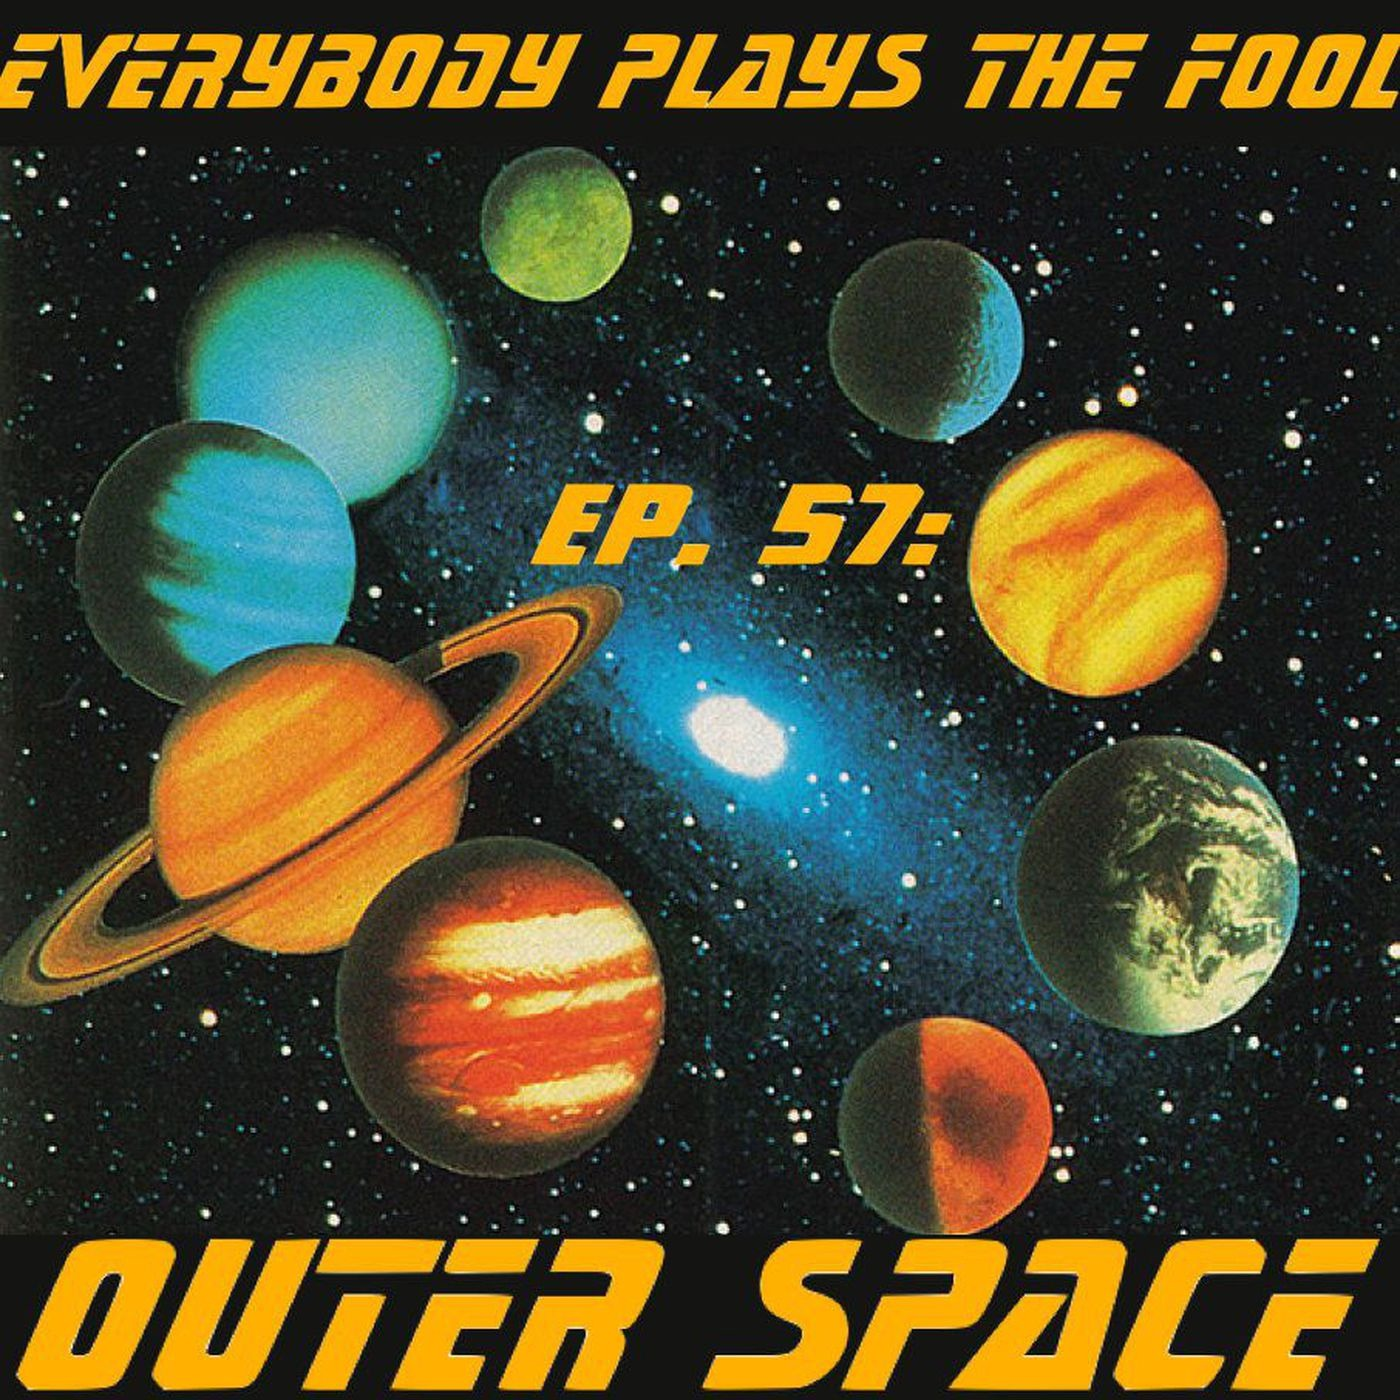 Ep 57: Outer Space Everybody Plays The Fool podcast